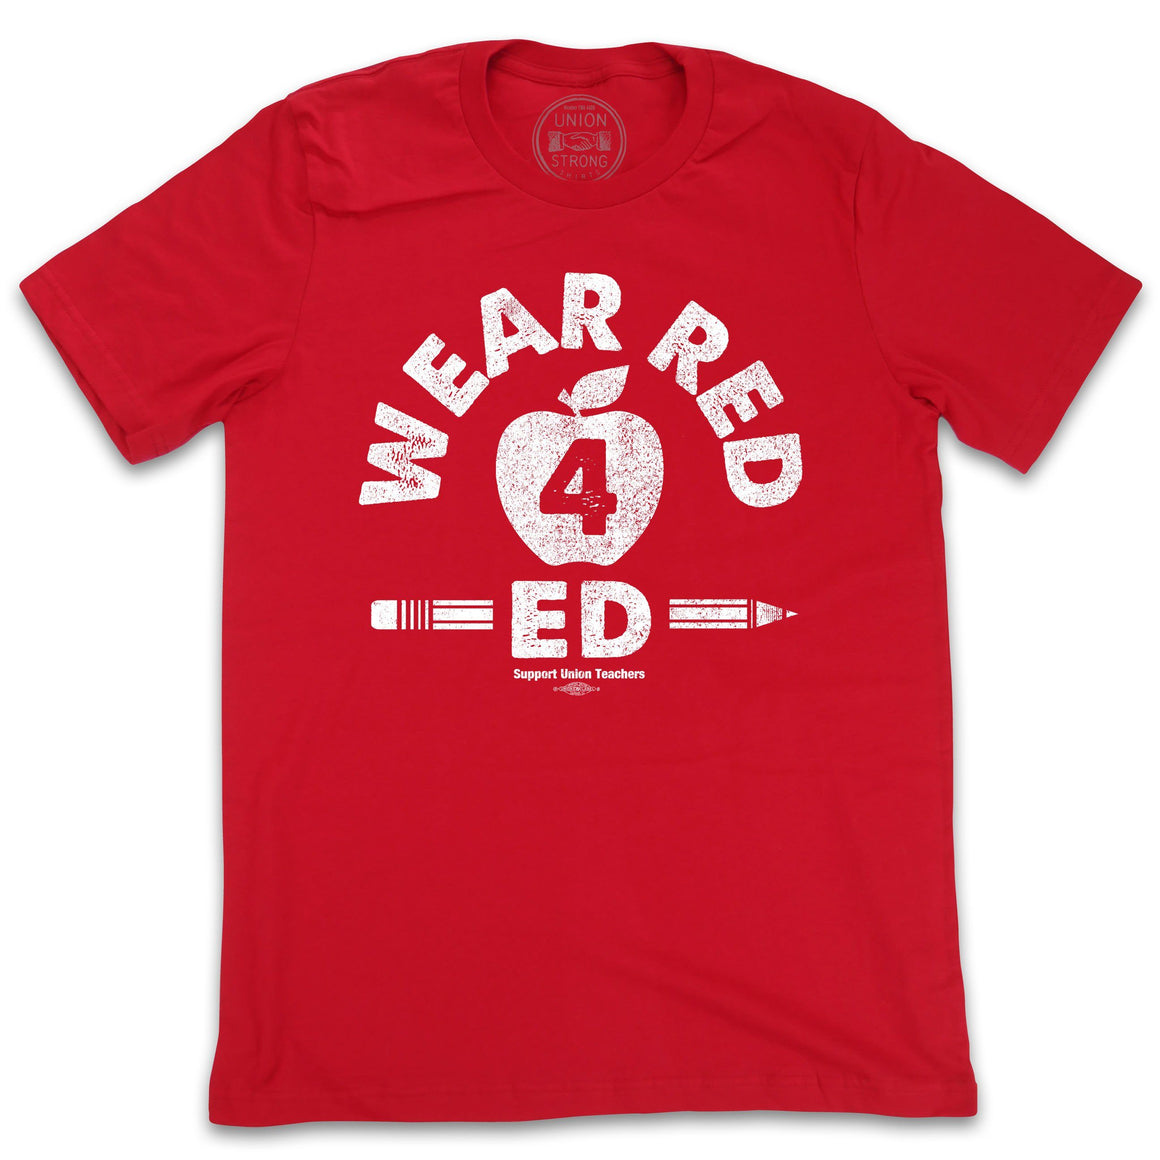 Wear Red 4 Ed Shirts unionstrongshirts